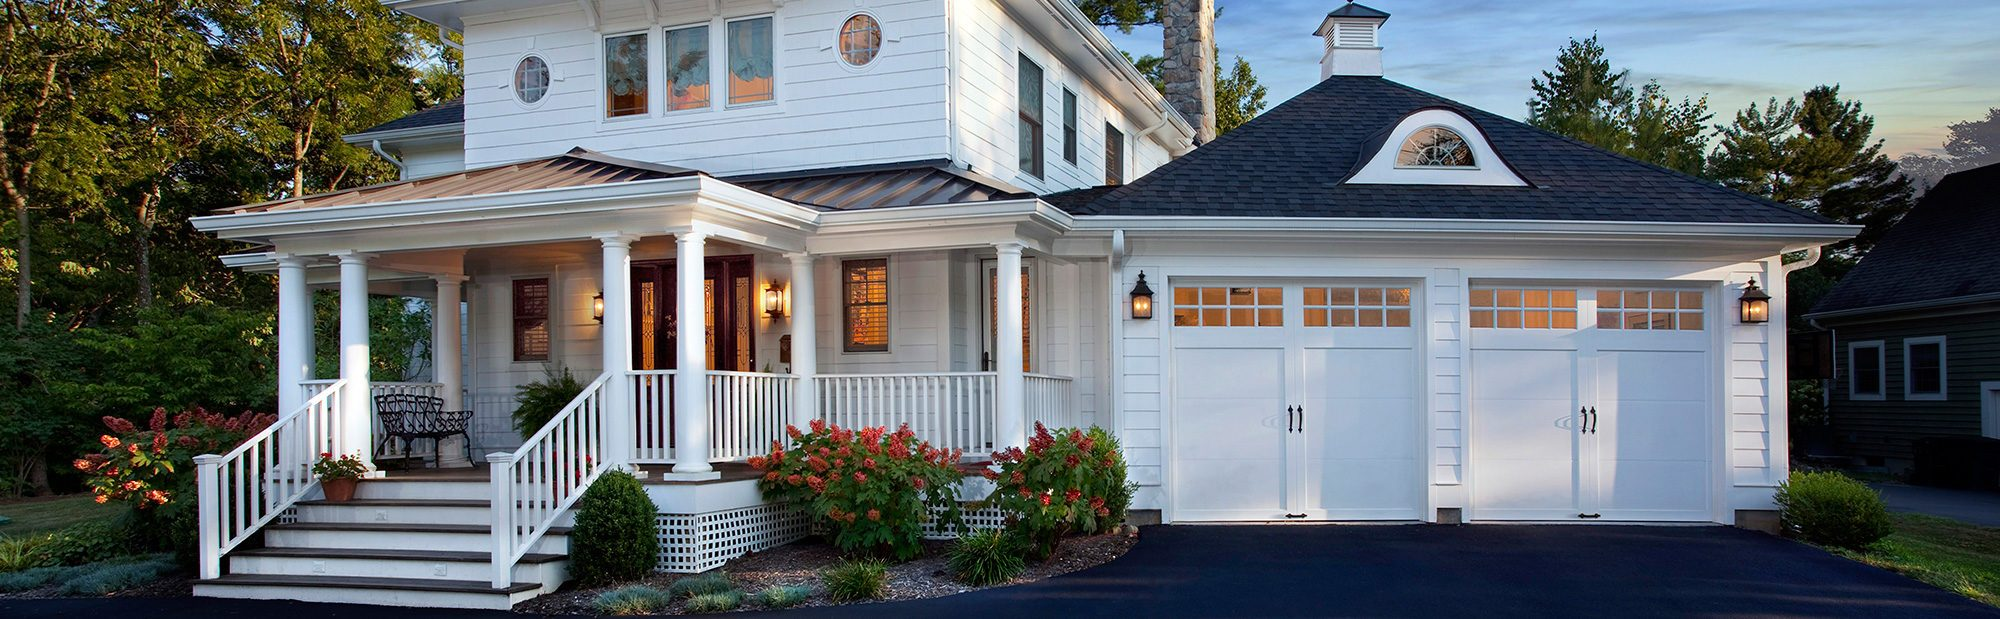 Garage Door Sales, Service & Repair Experts